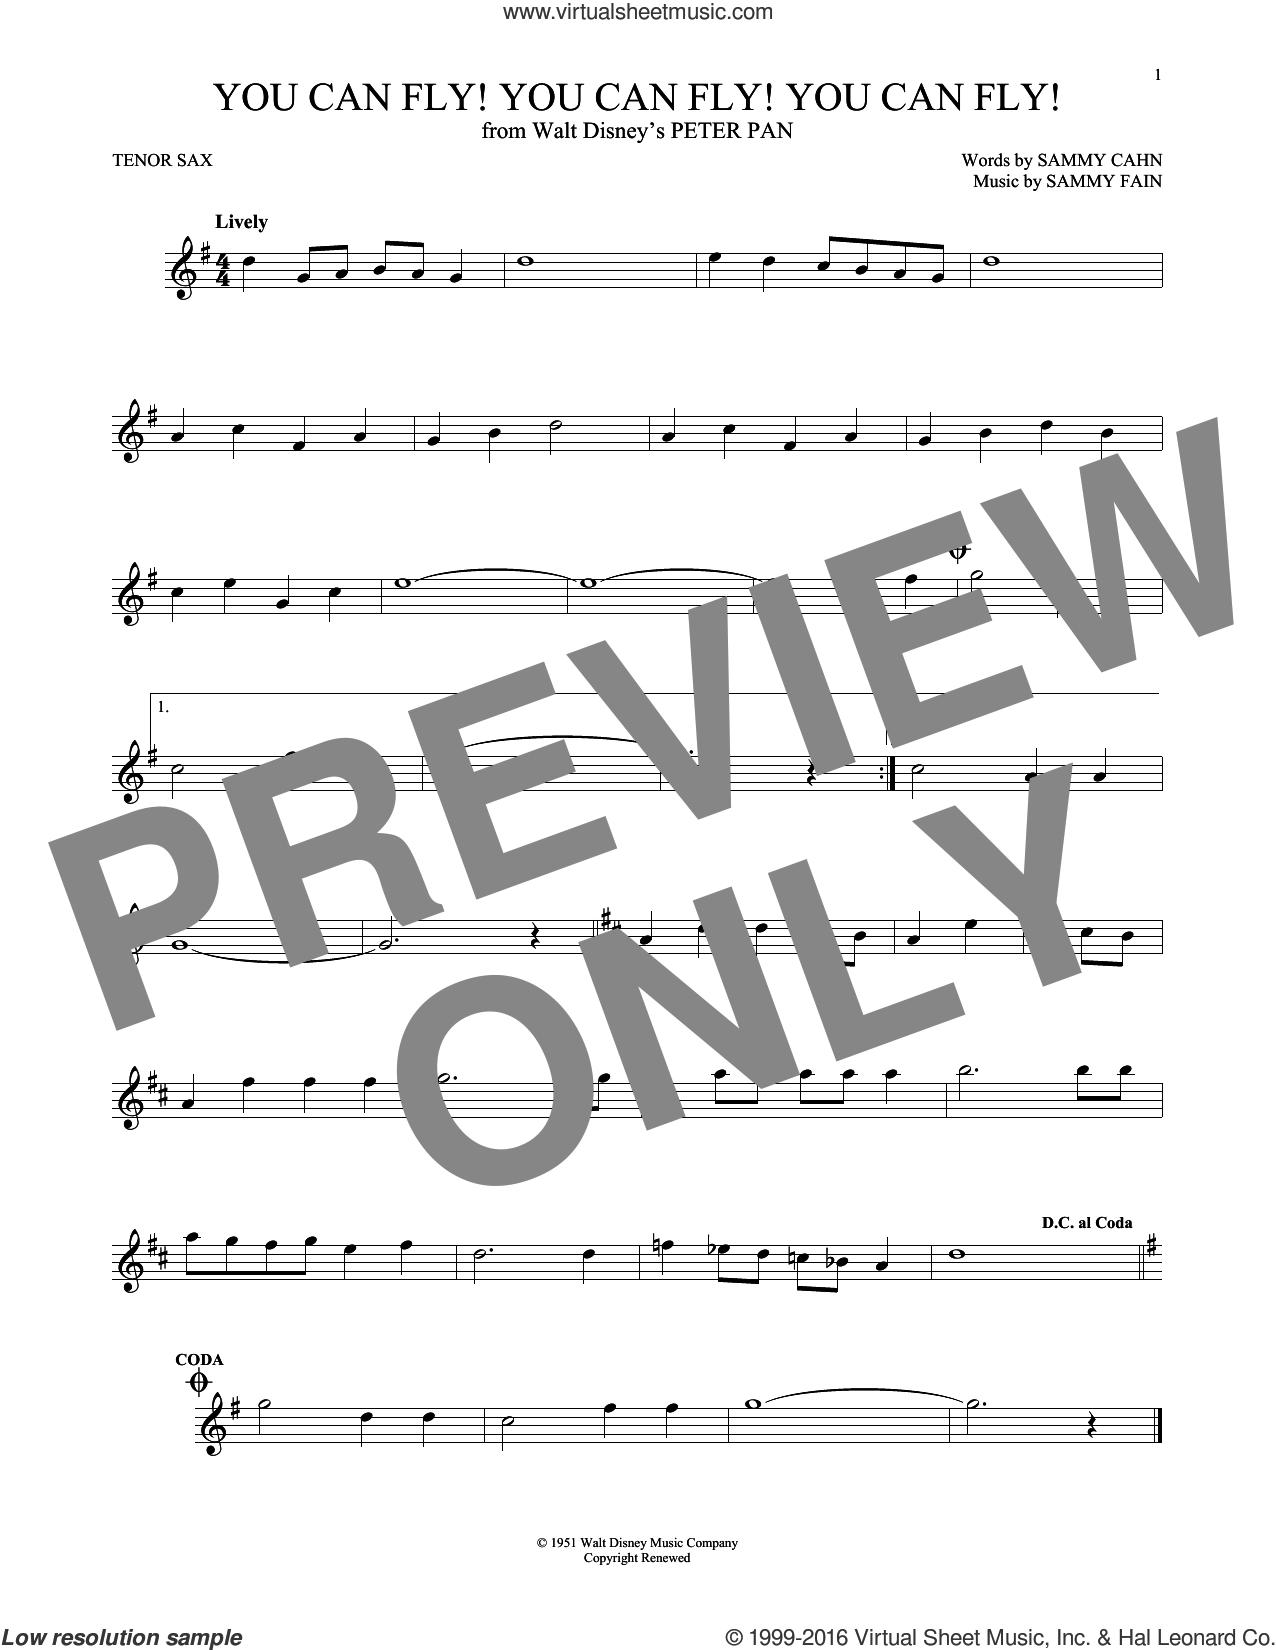 You Can Fly! You Can Fly! You Can Fly! sheet music for tenor saxophone solo by Sammy Cahn and Sammy Fain. Score Image Preview.